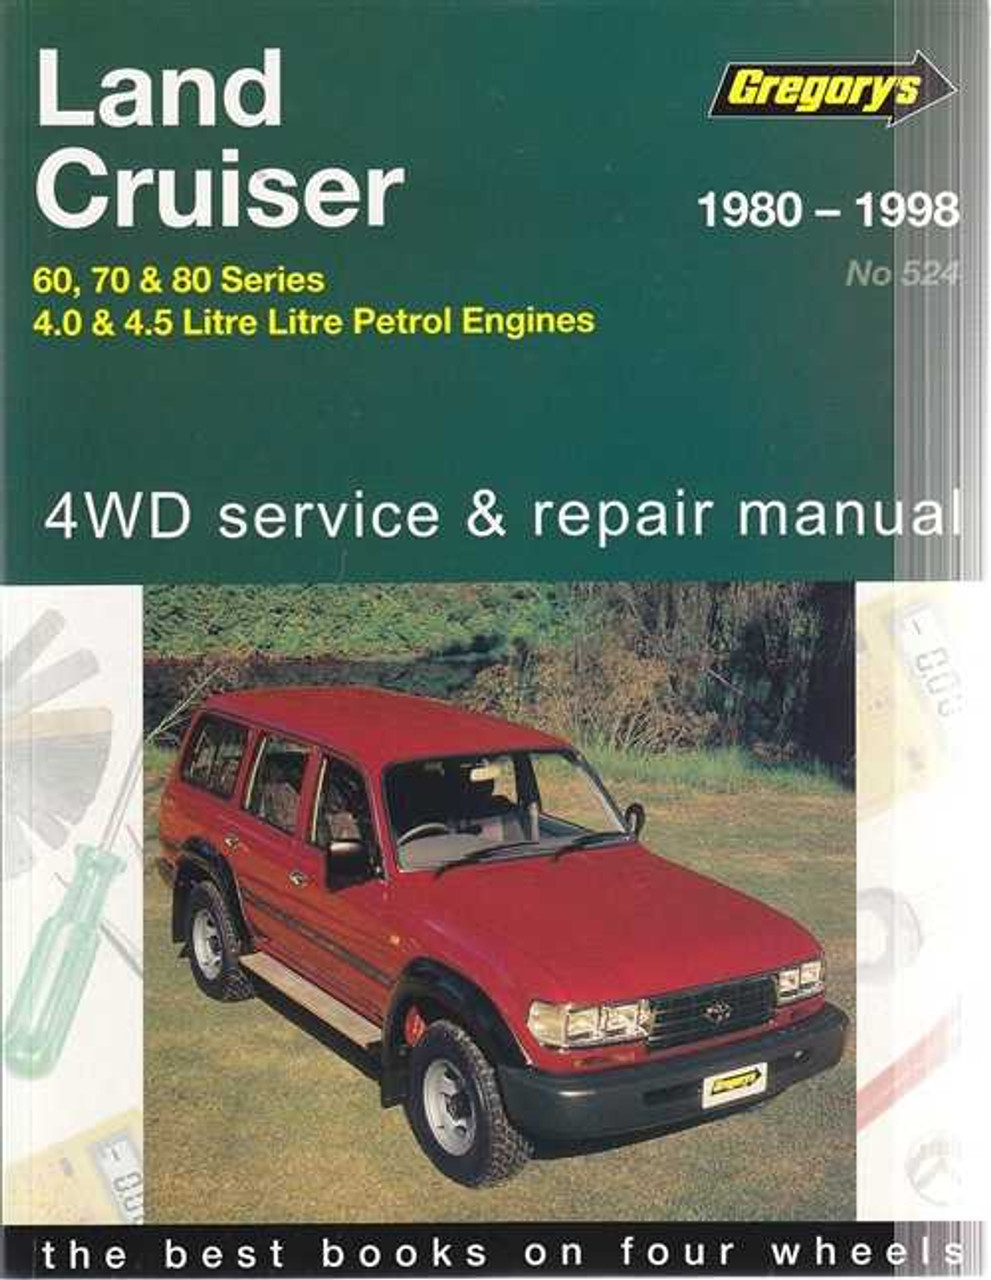 land cruiser 60 70 80 series 4 0 4 5 litre petrol 1980 1998 rh automotobookshop com au 2000 Toyota Land Cruiser toyota land cruiser 80 series service manual